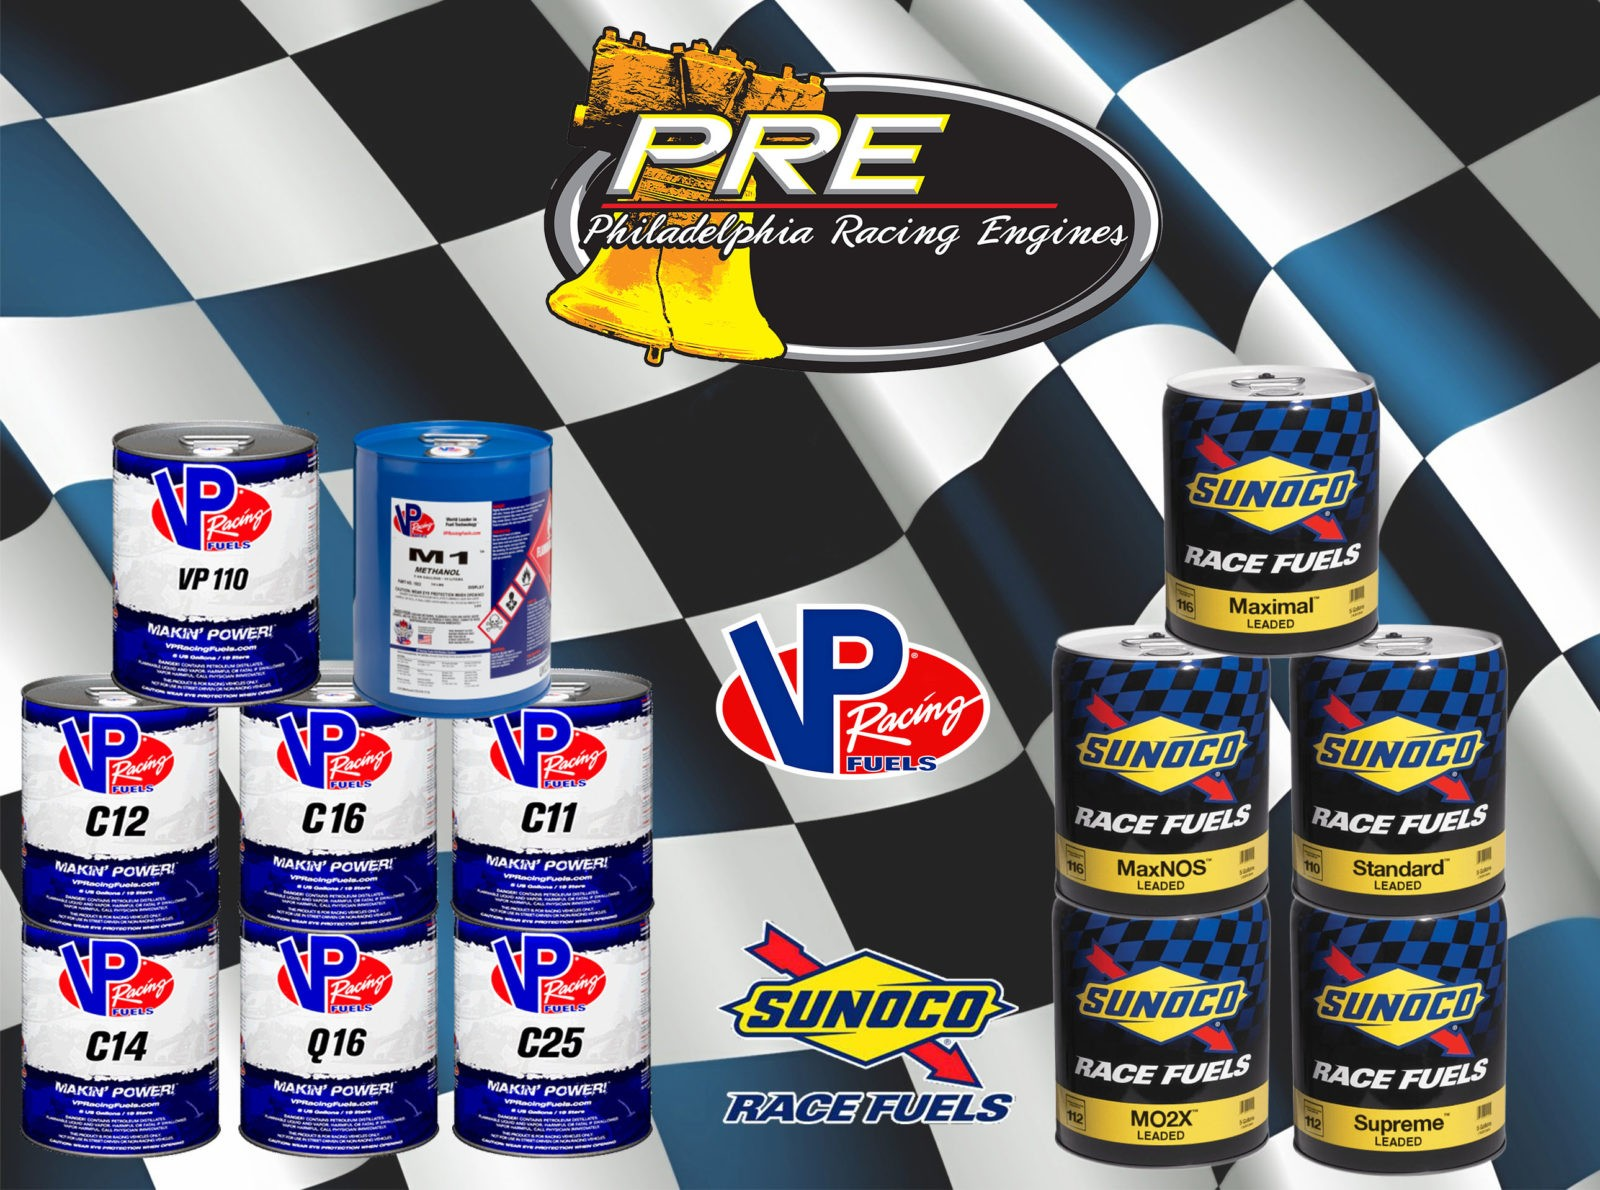 Vp Racing Fuel Sunoco Racing Fuel Philadelphia Racing Products Philadelphia Racing Engines